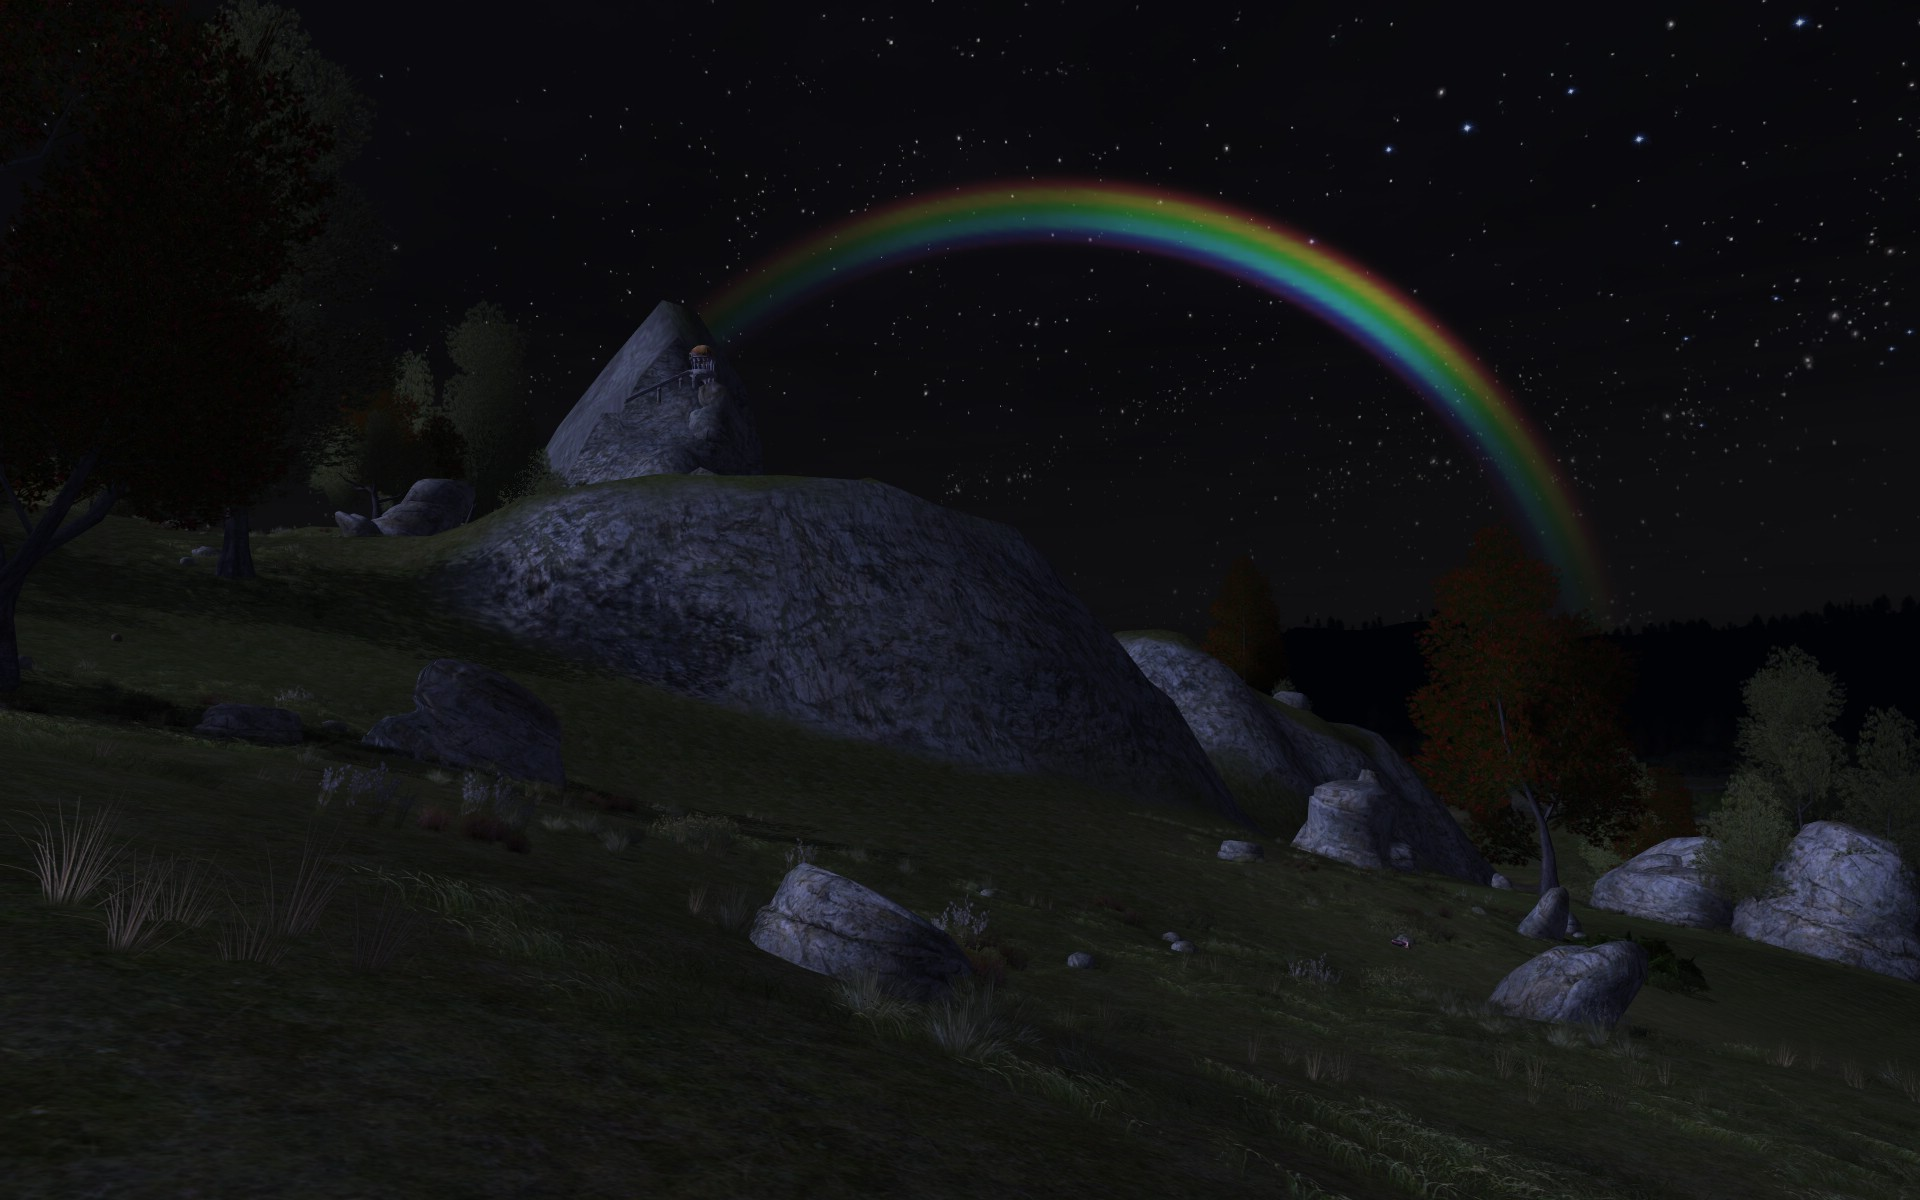 Lord of the Rings Online - I wonder if there's a pot o' gold at the end of this rainbow...